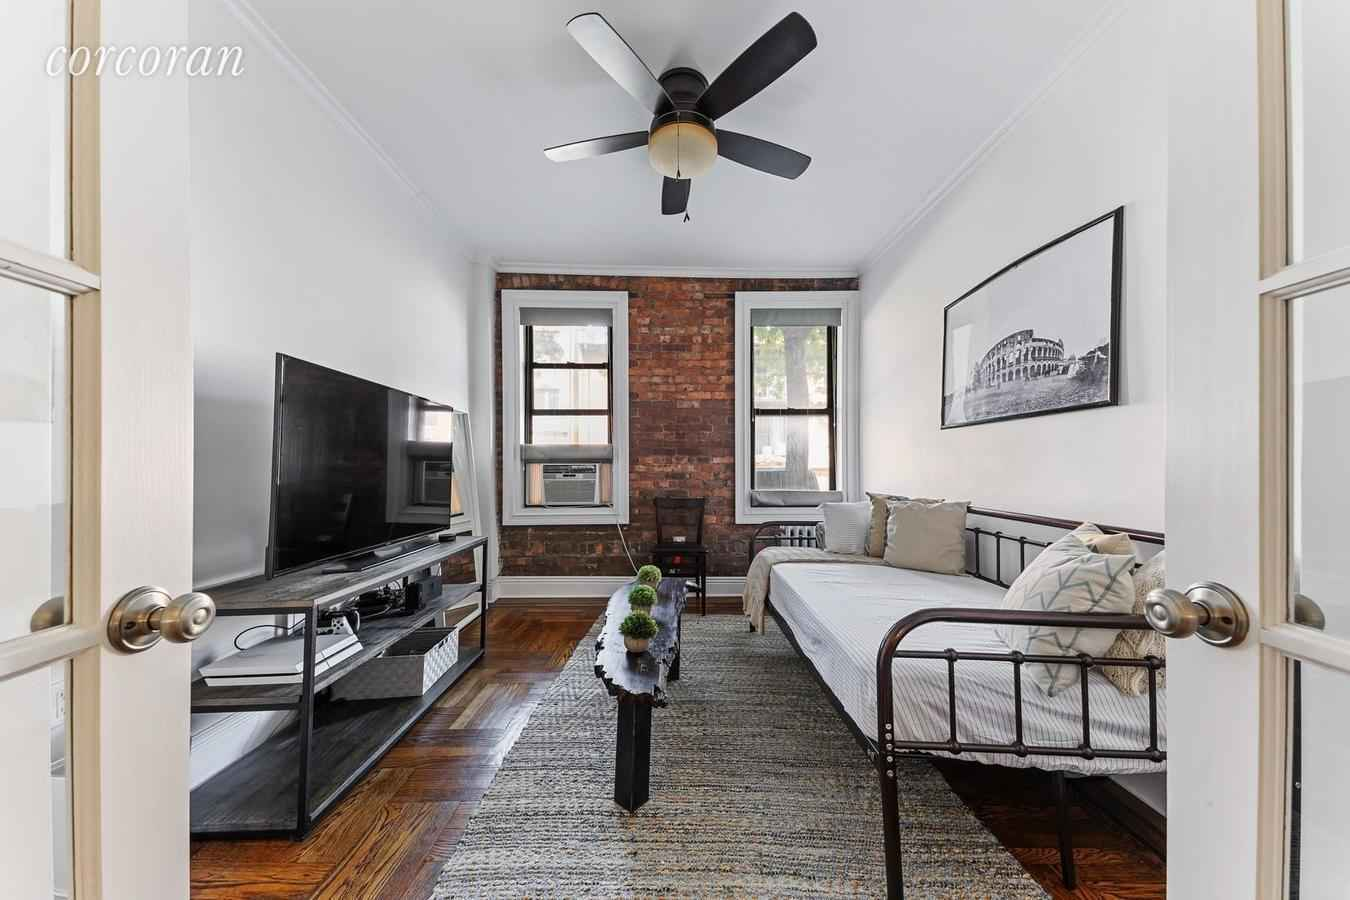 Apartment for sale at 24-75 38th Street, Apt A1